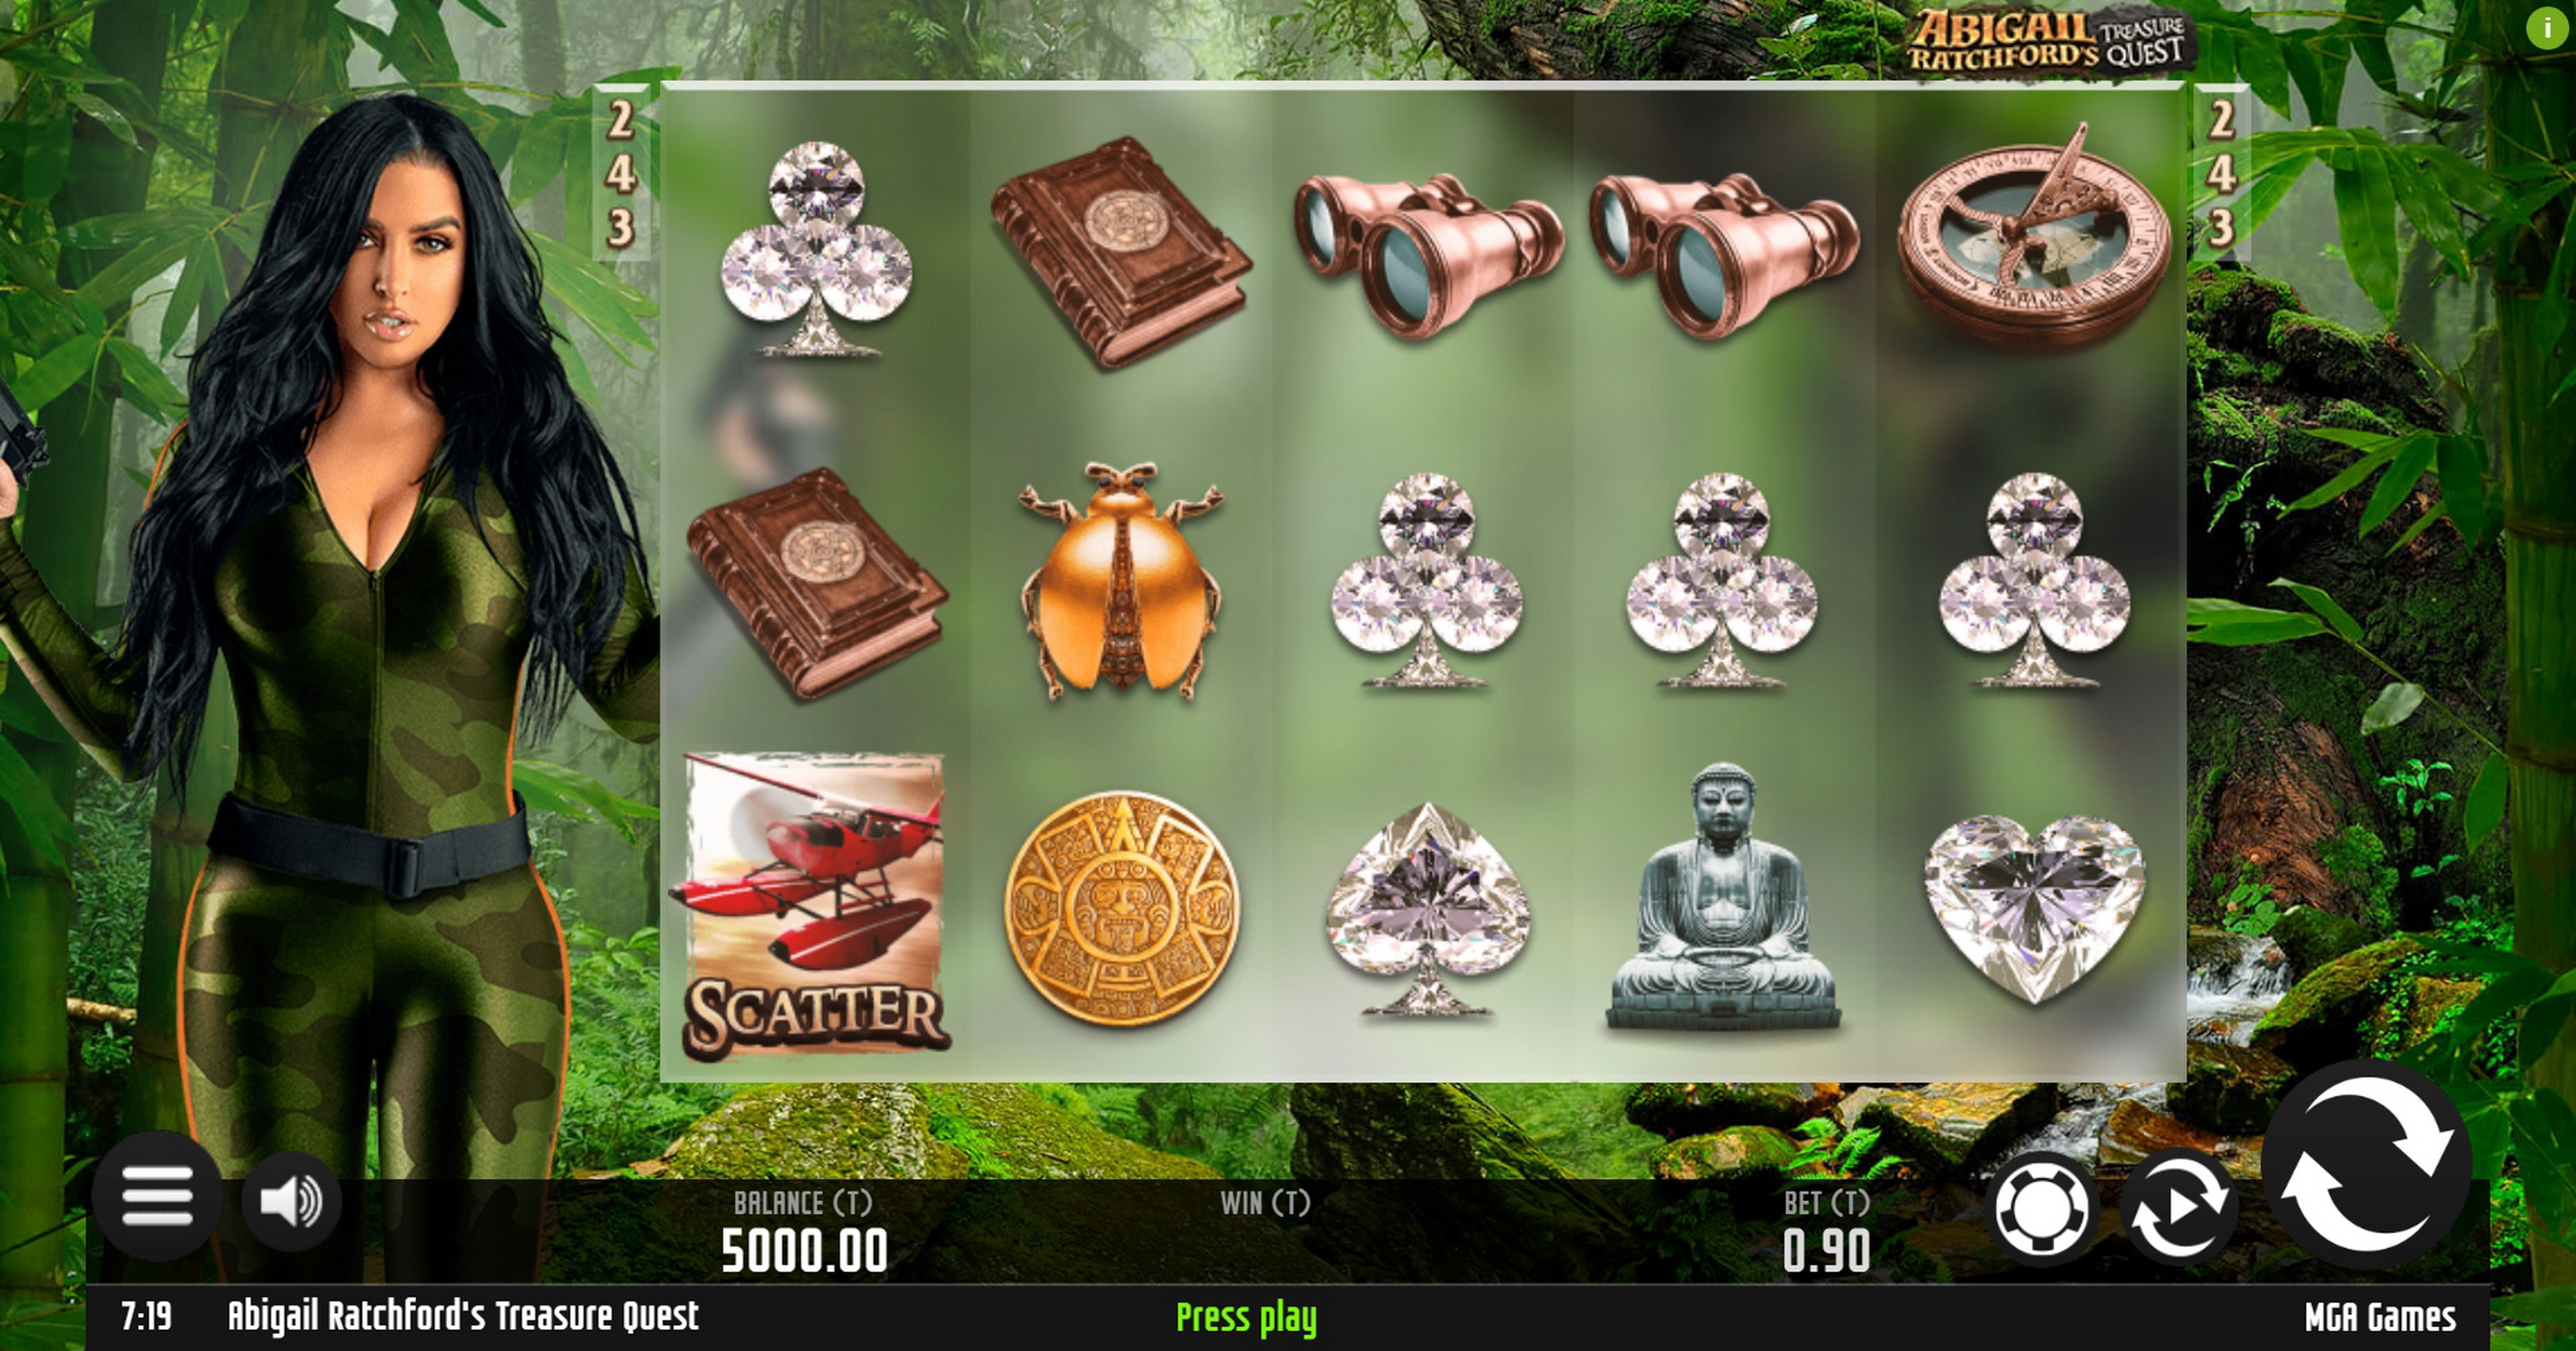 Reels in Abigail Ratchfords Treasure Quest Slot Game by MGA